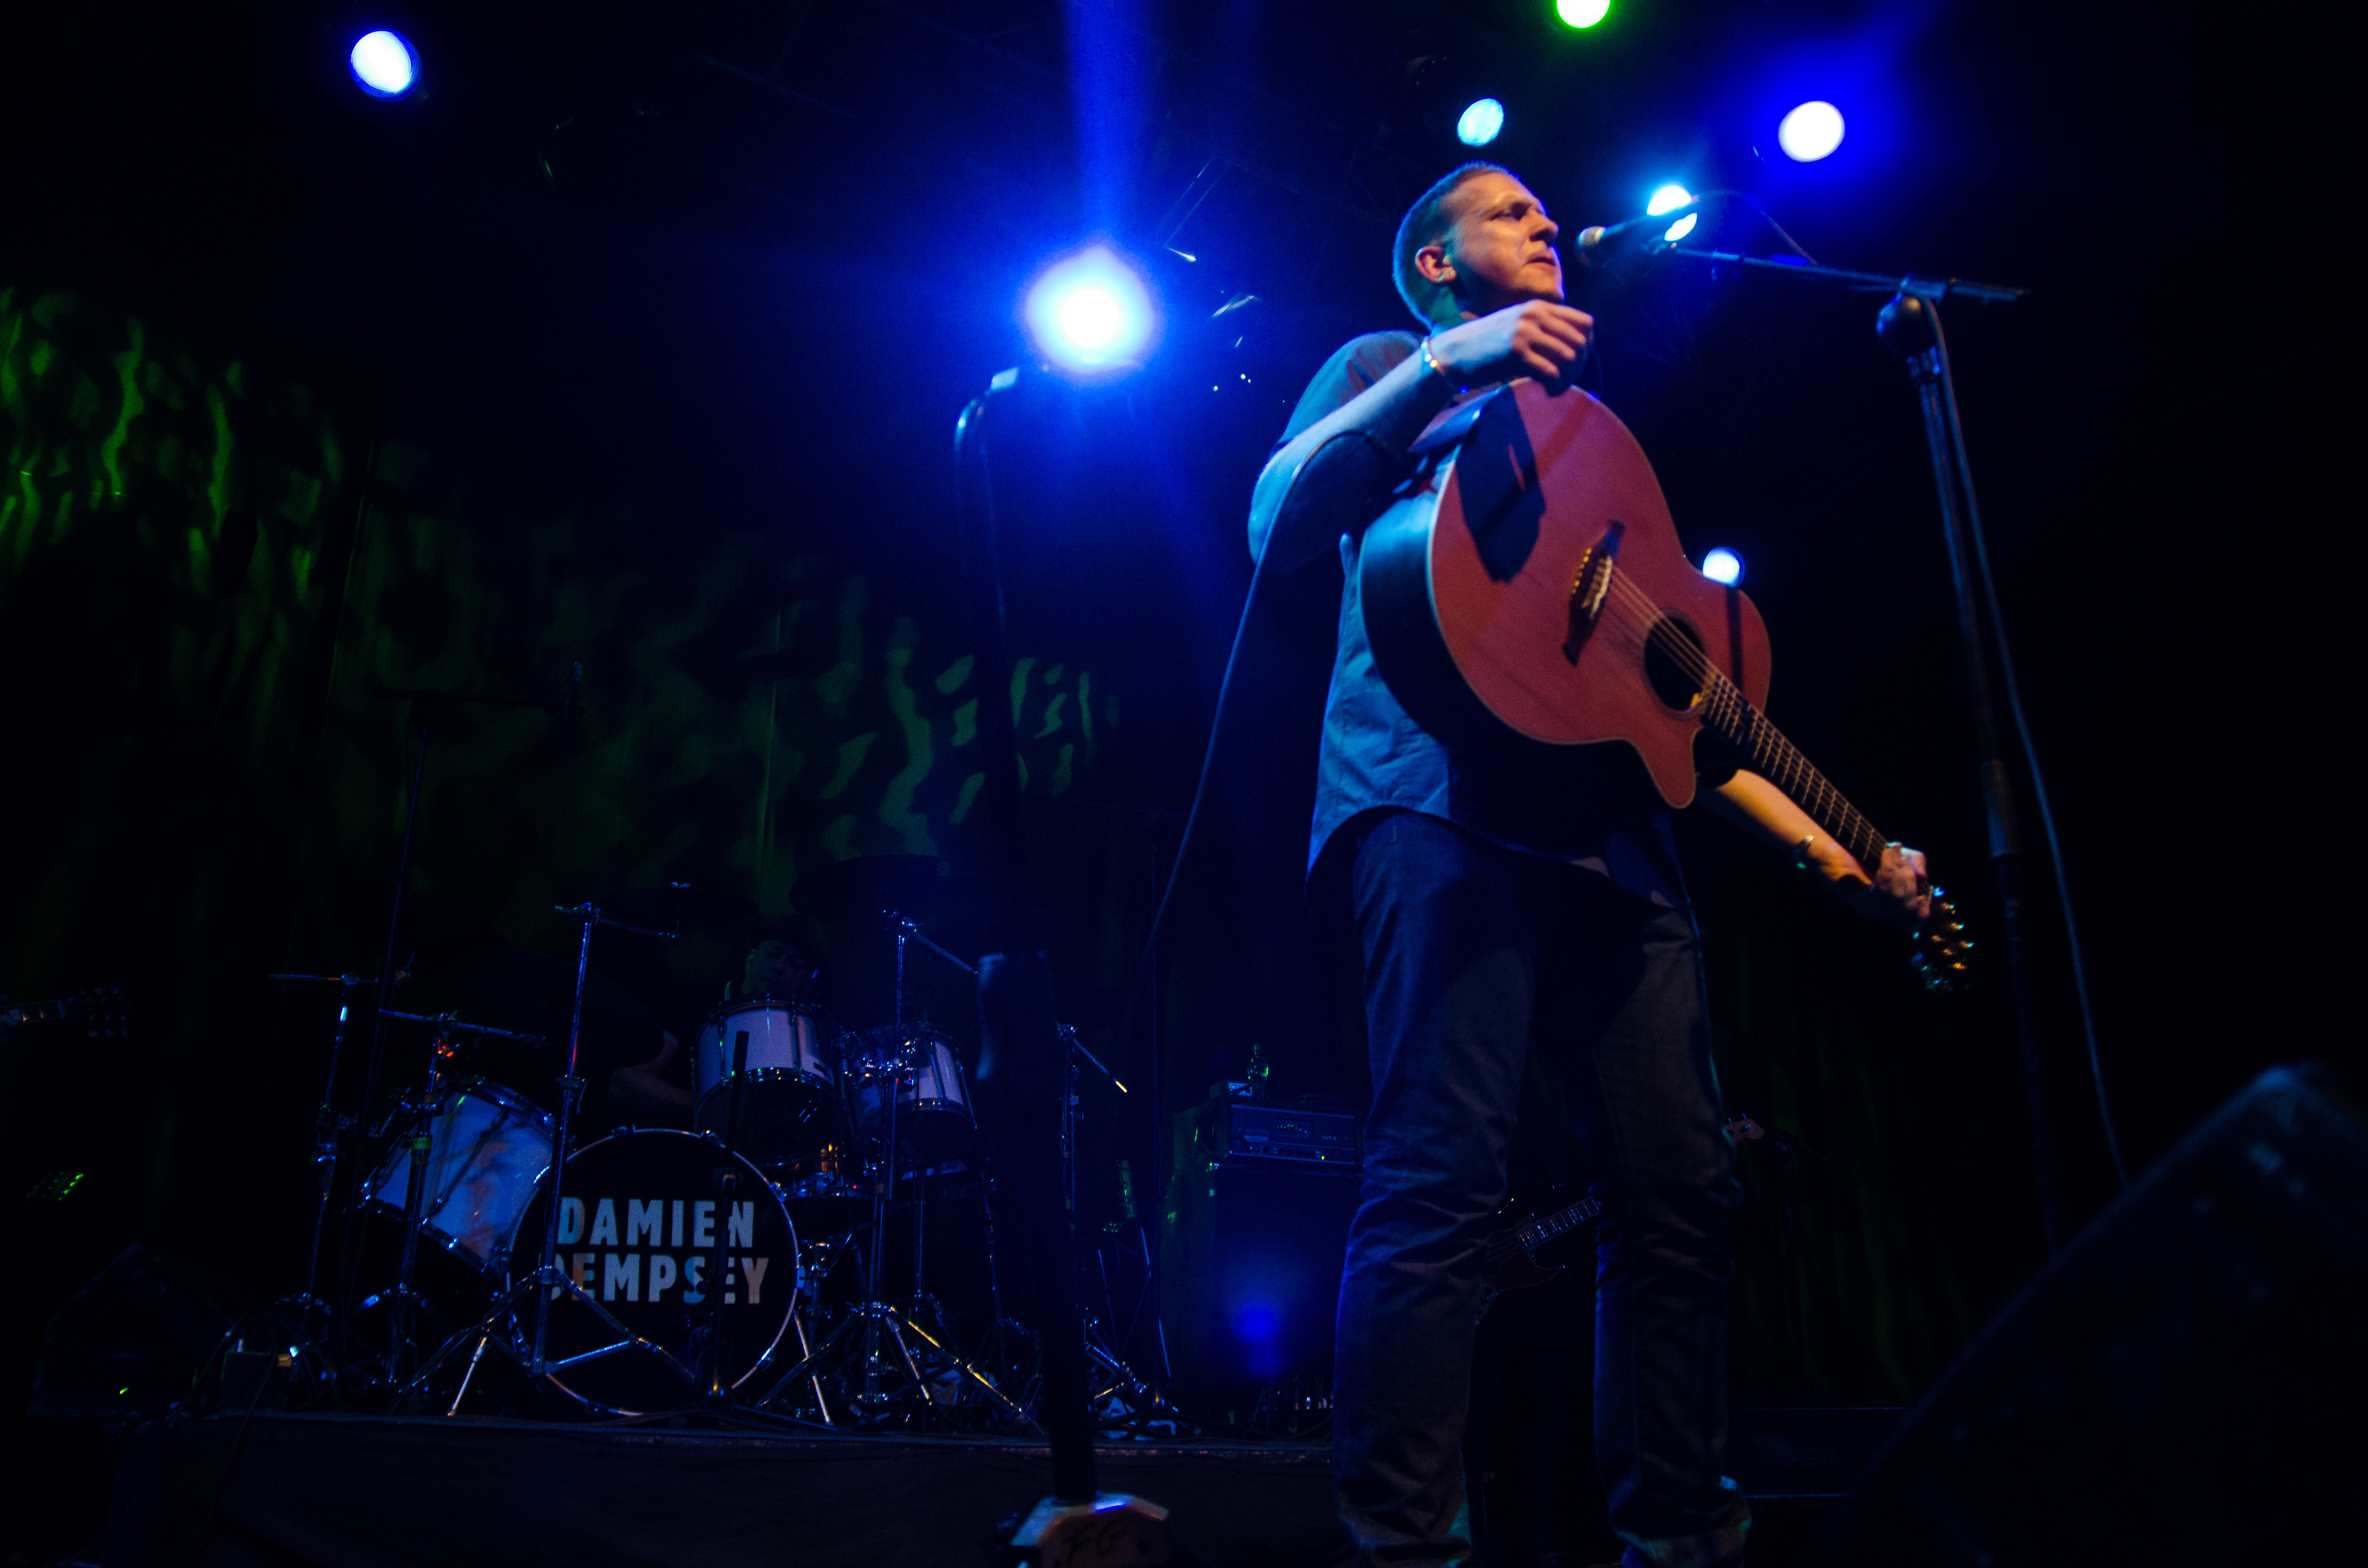 damien-dempsey-at-vicar-street-by-sean-smyth-9-12-15-29-of-34